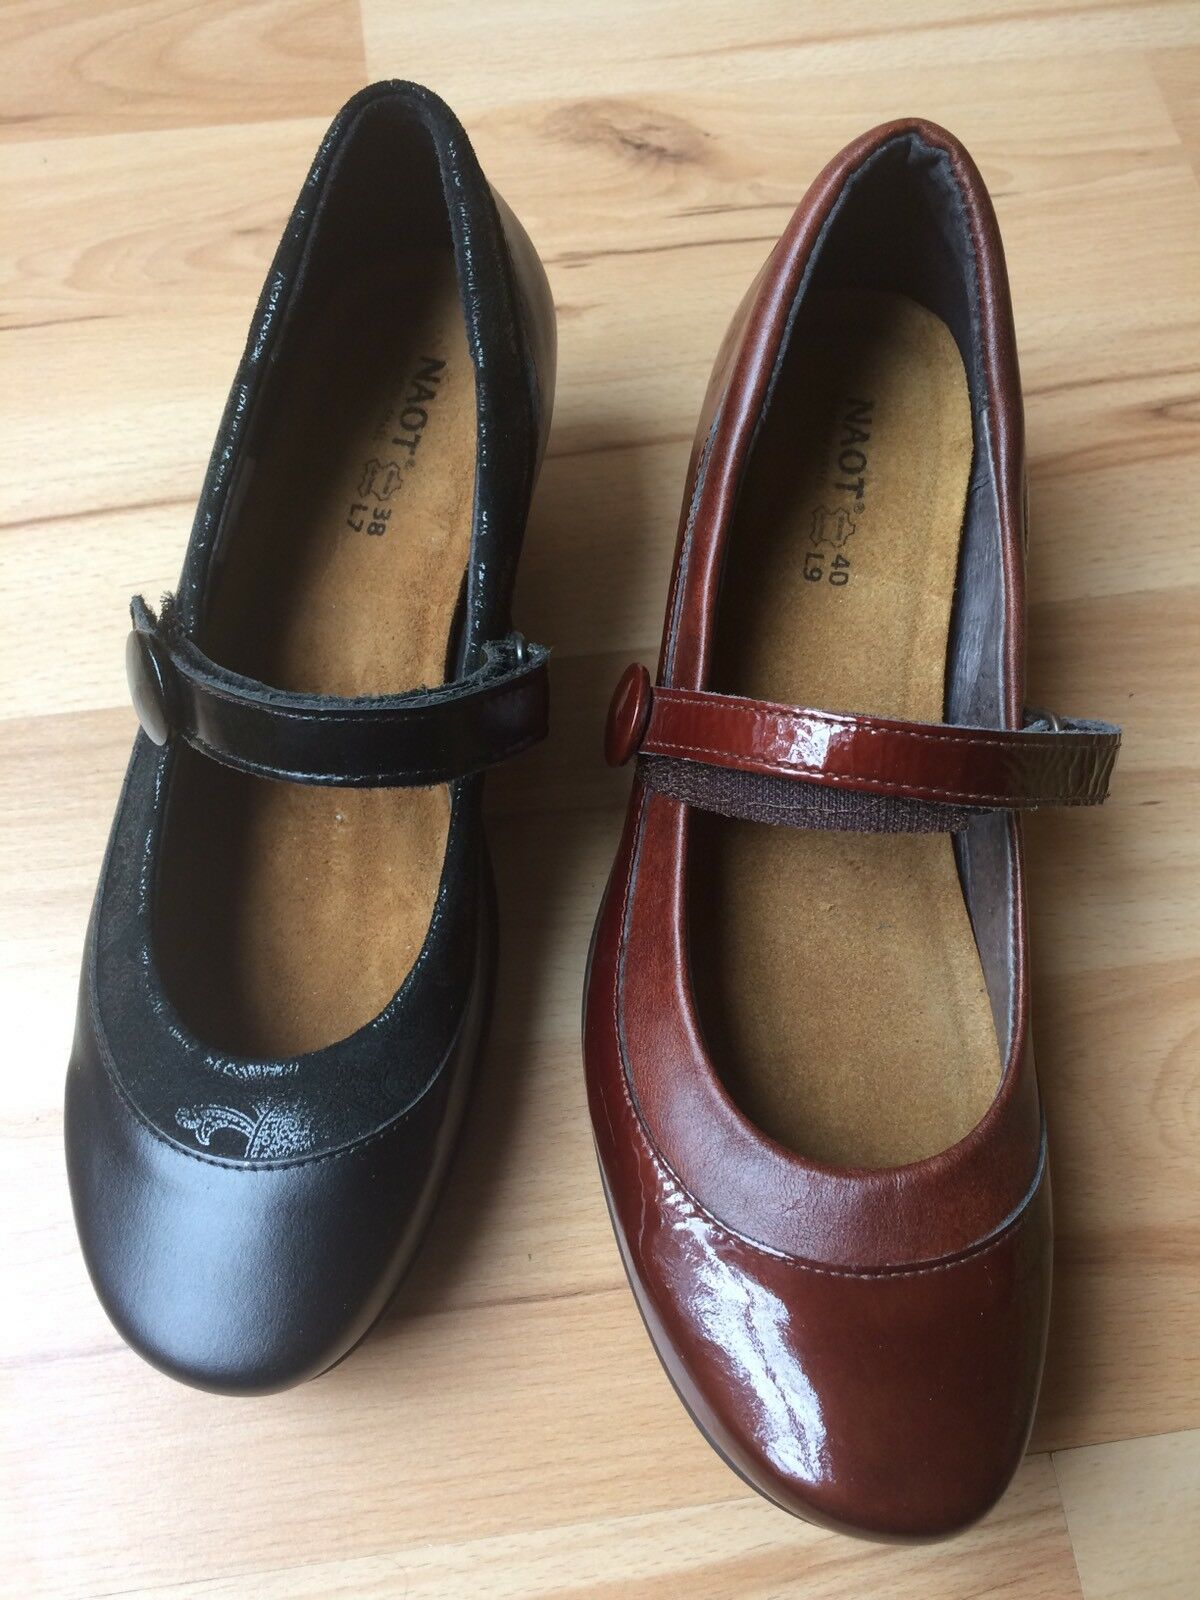 NAOT Trendy 44024 Mary Jane Pumps Heels Brown Crinkle Black Gloss Lace 7 8 9 11